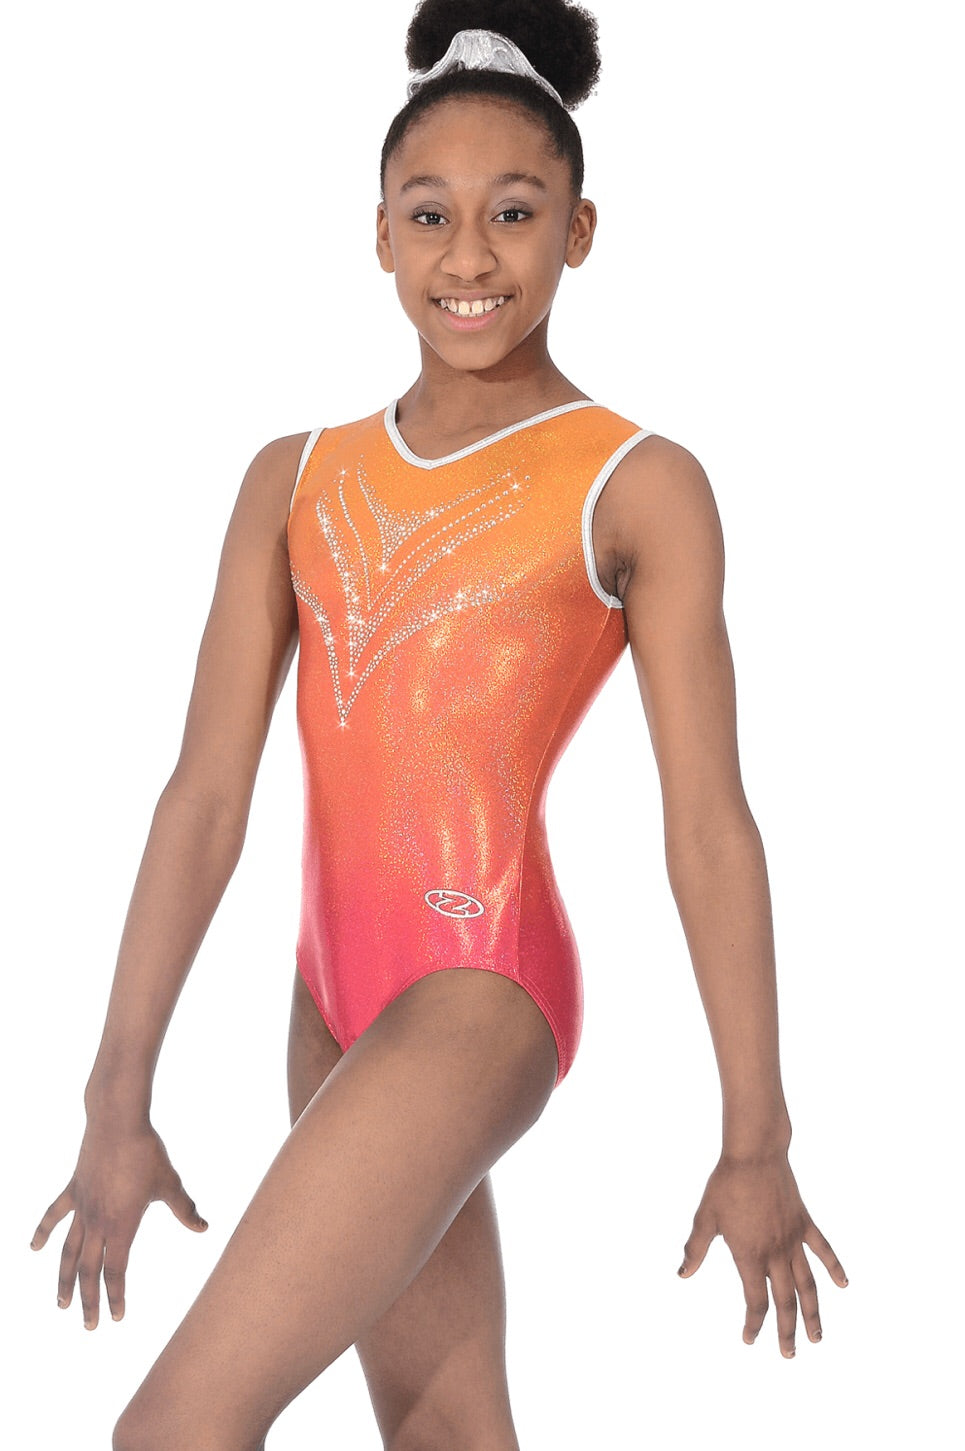 The Zone Savannah Gymnastics Leotard